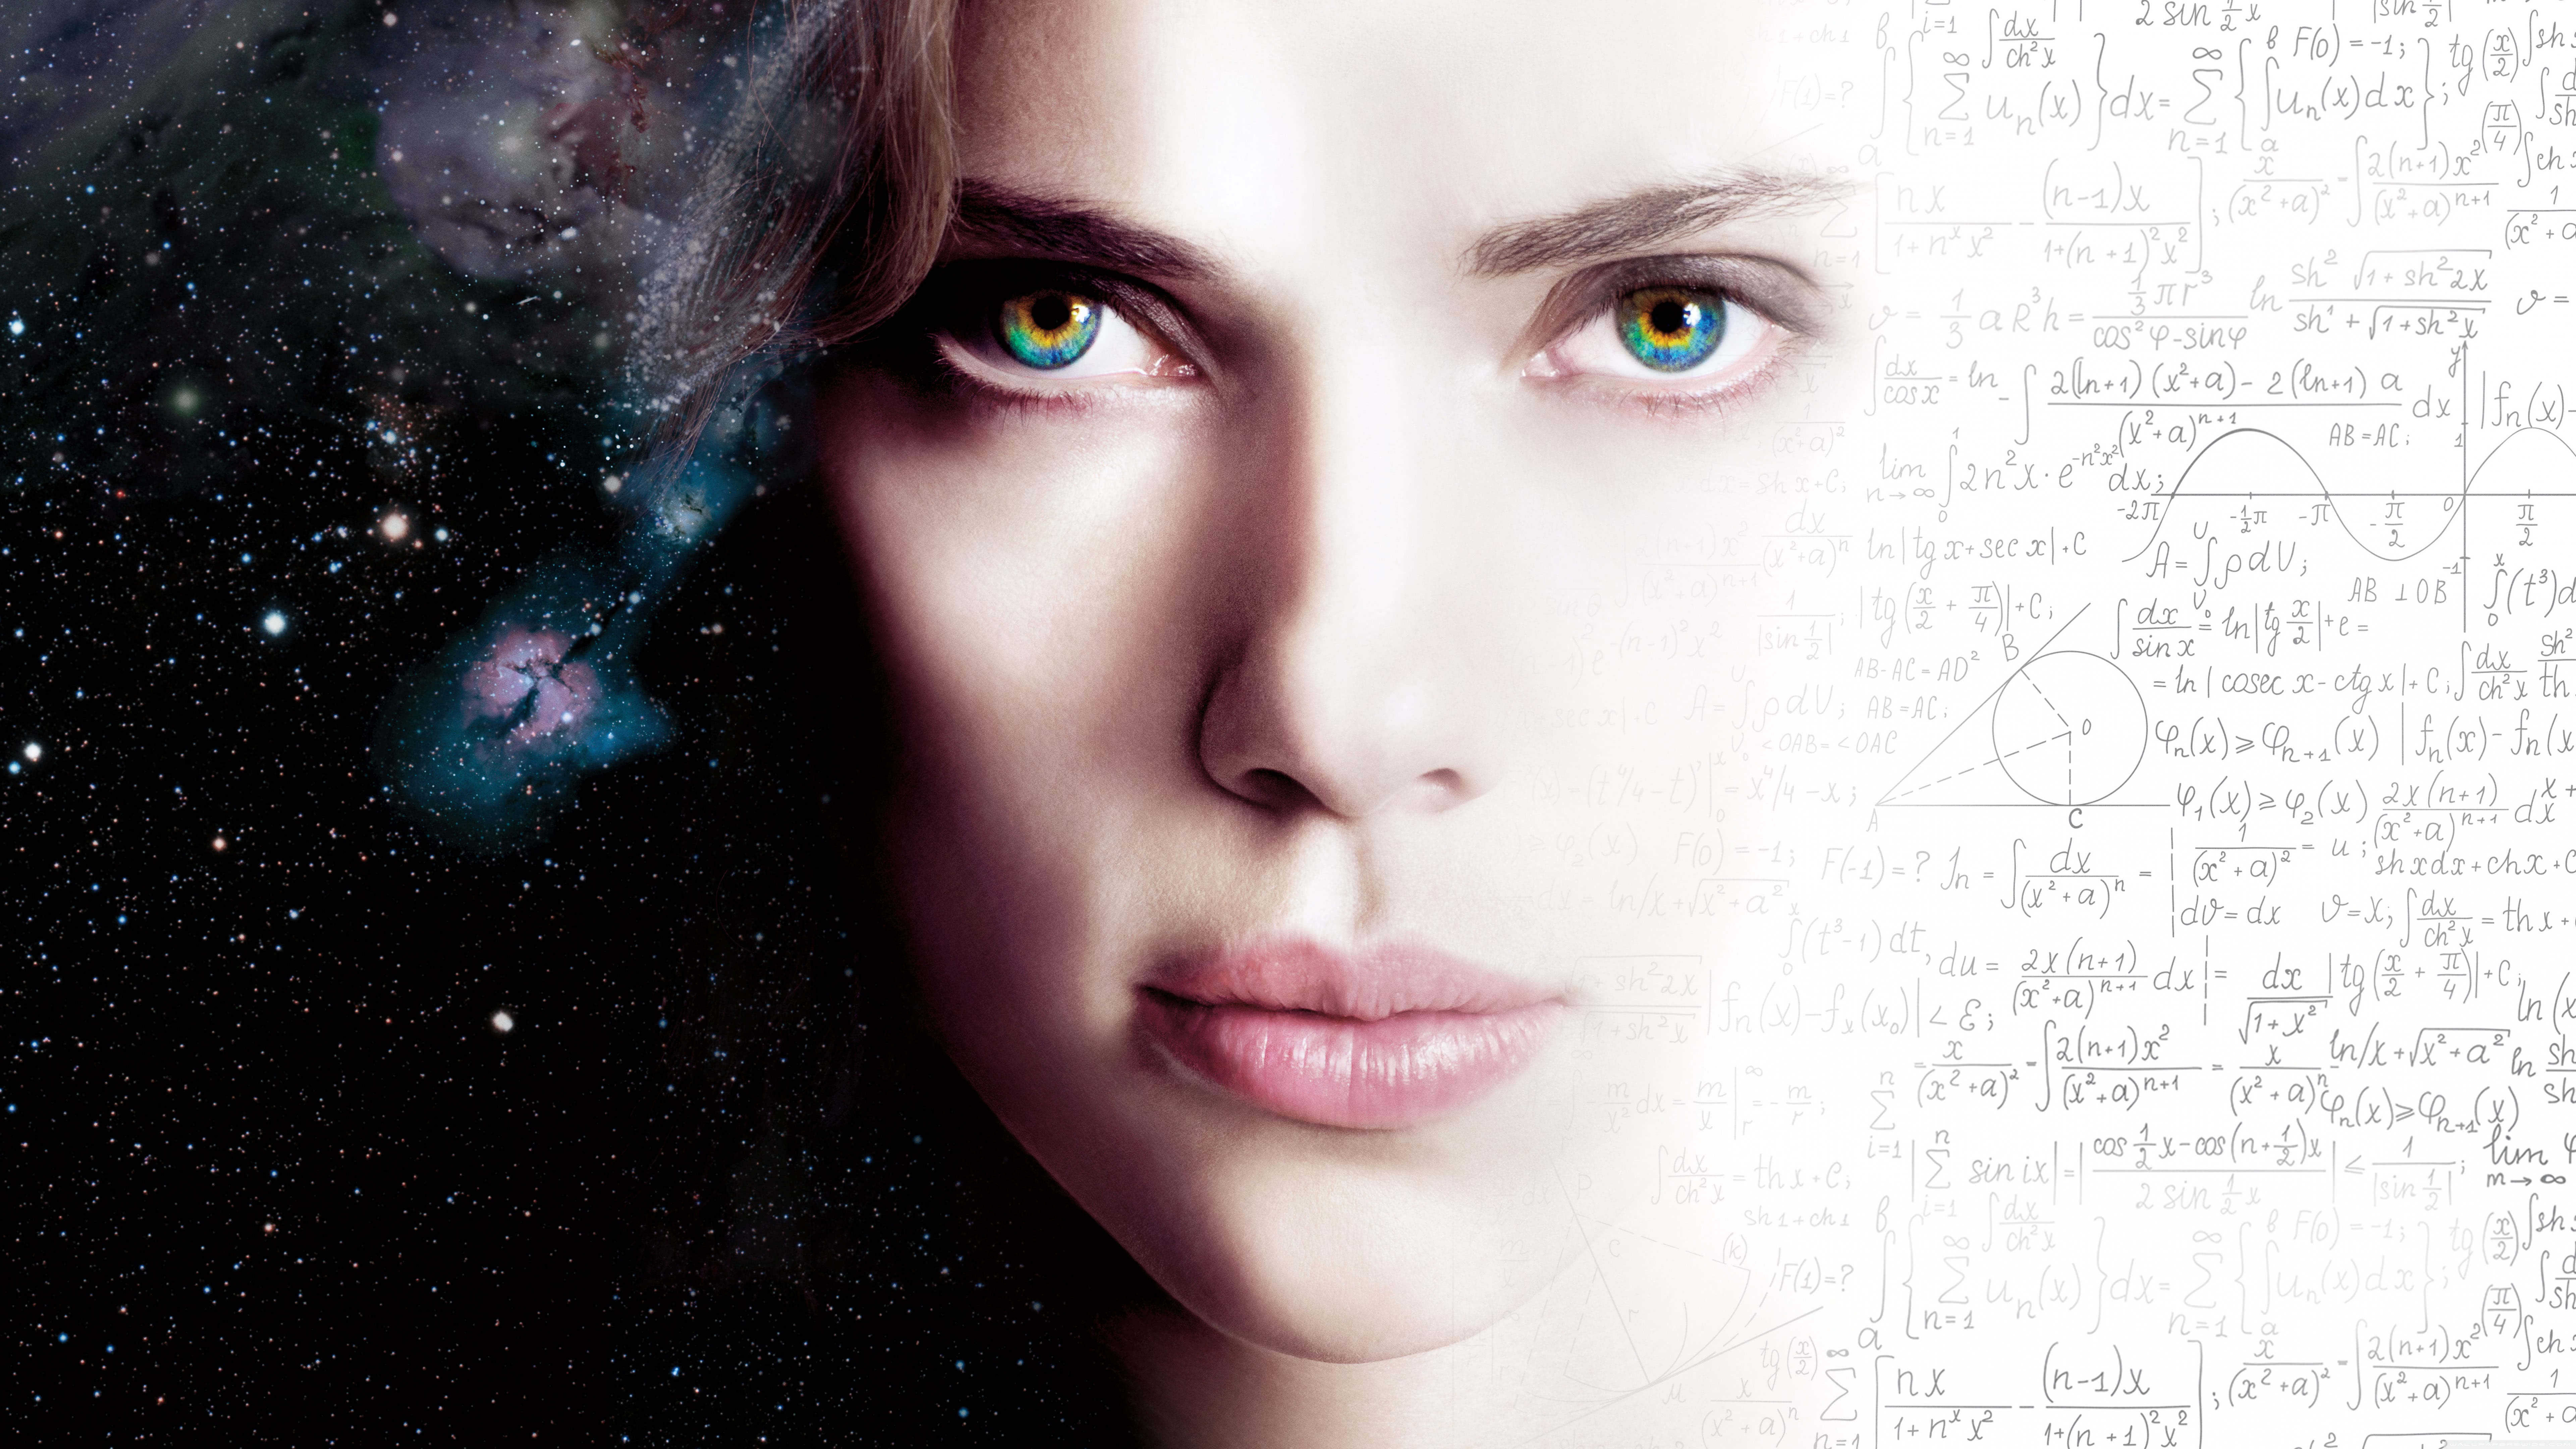 lucy 2014 movie uhd 8k wallpaper